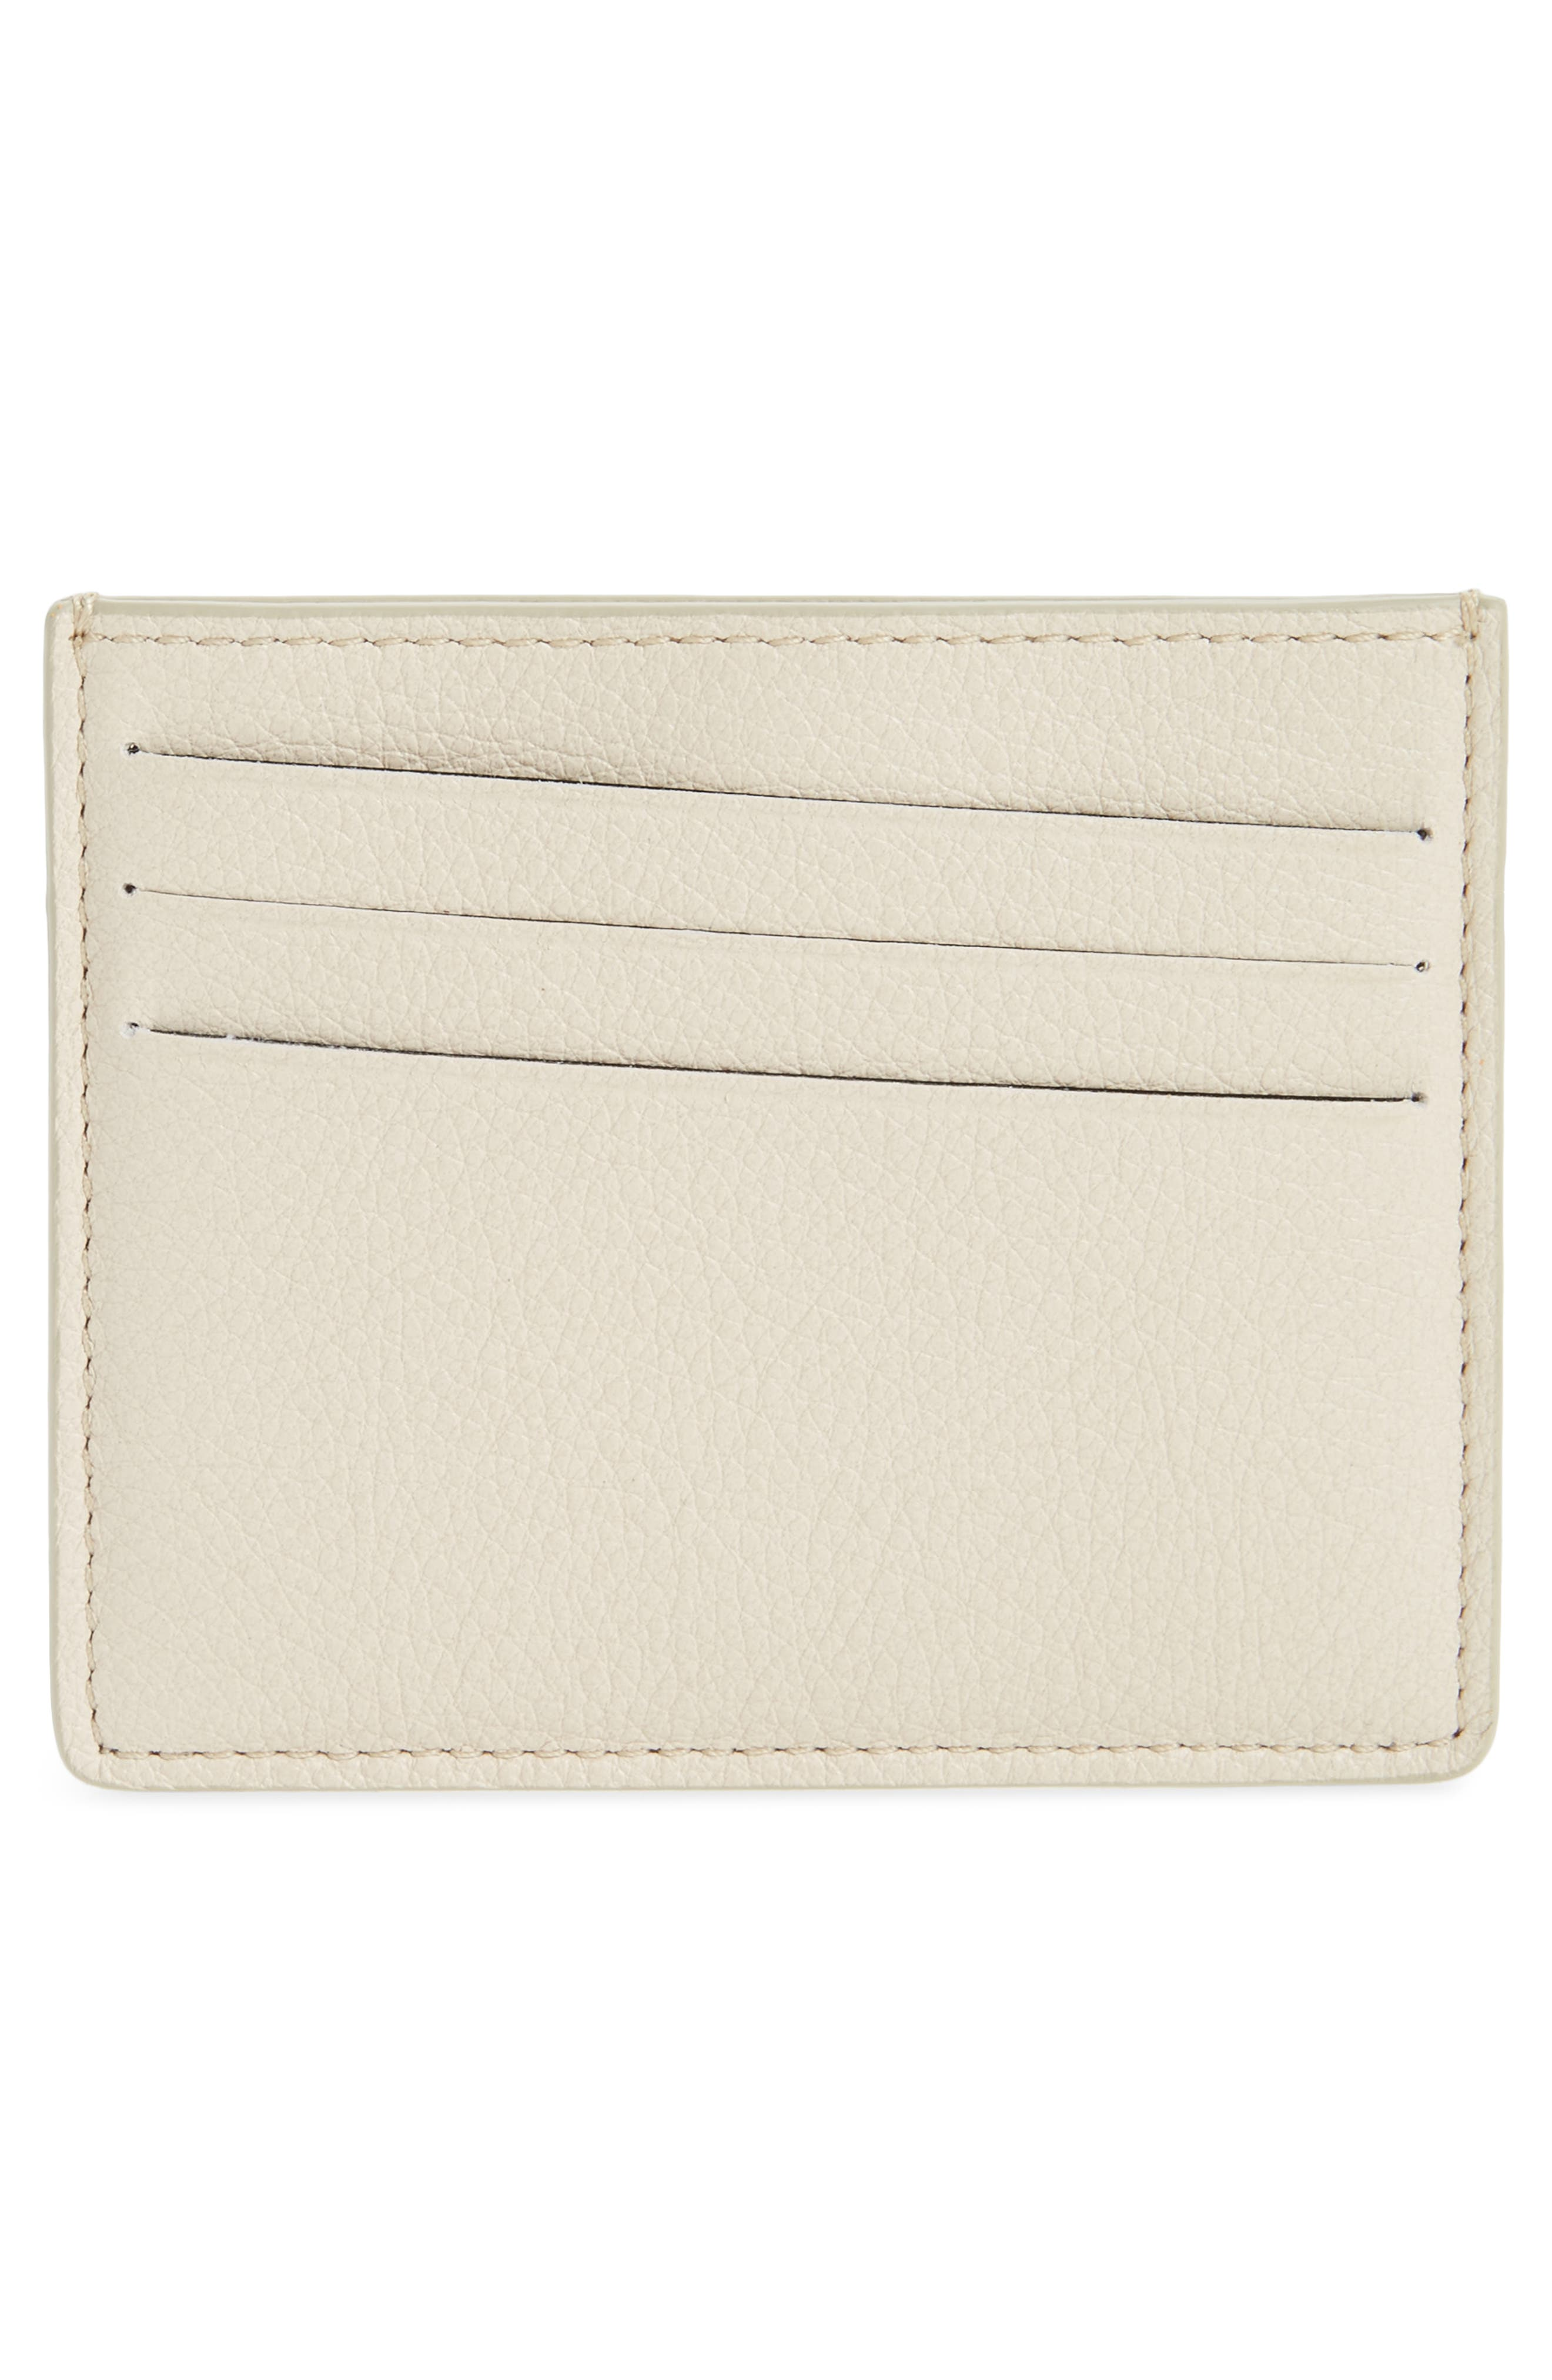 Leather Card Case,                             Alternate thumbnail 2, color,                             100